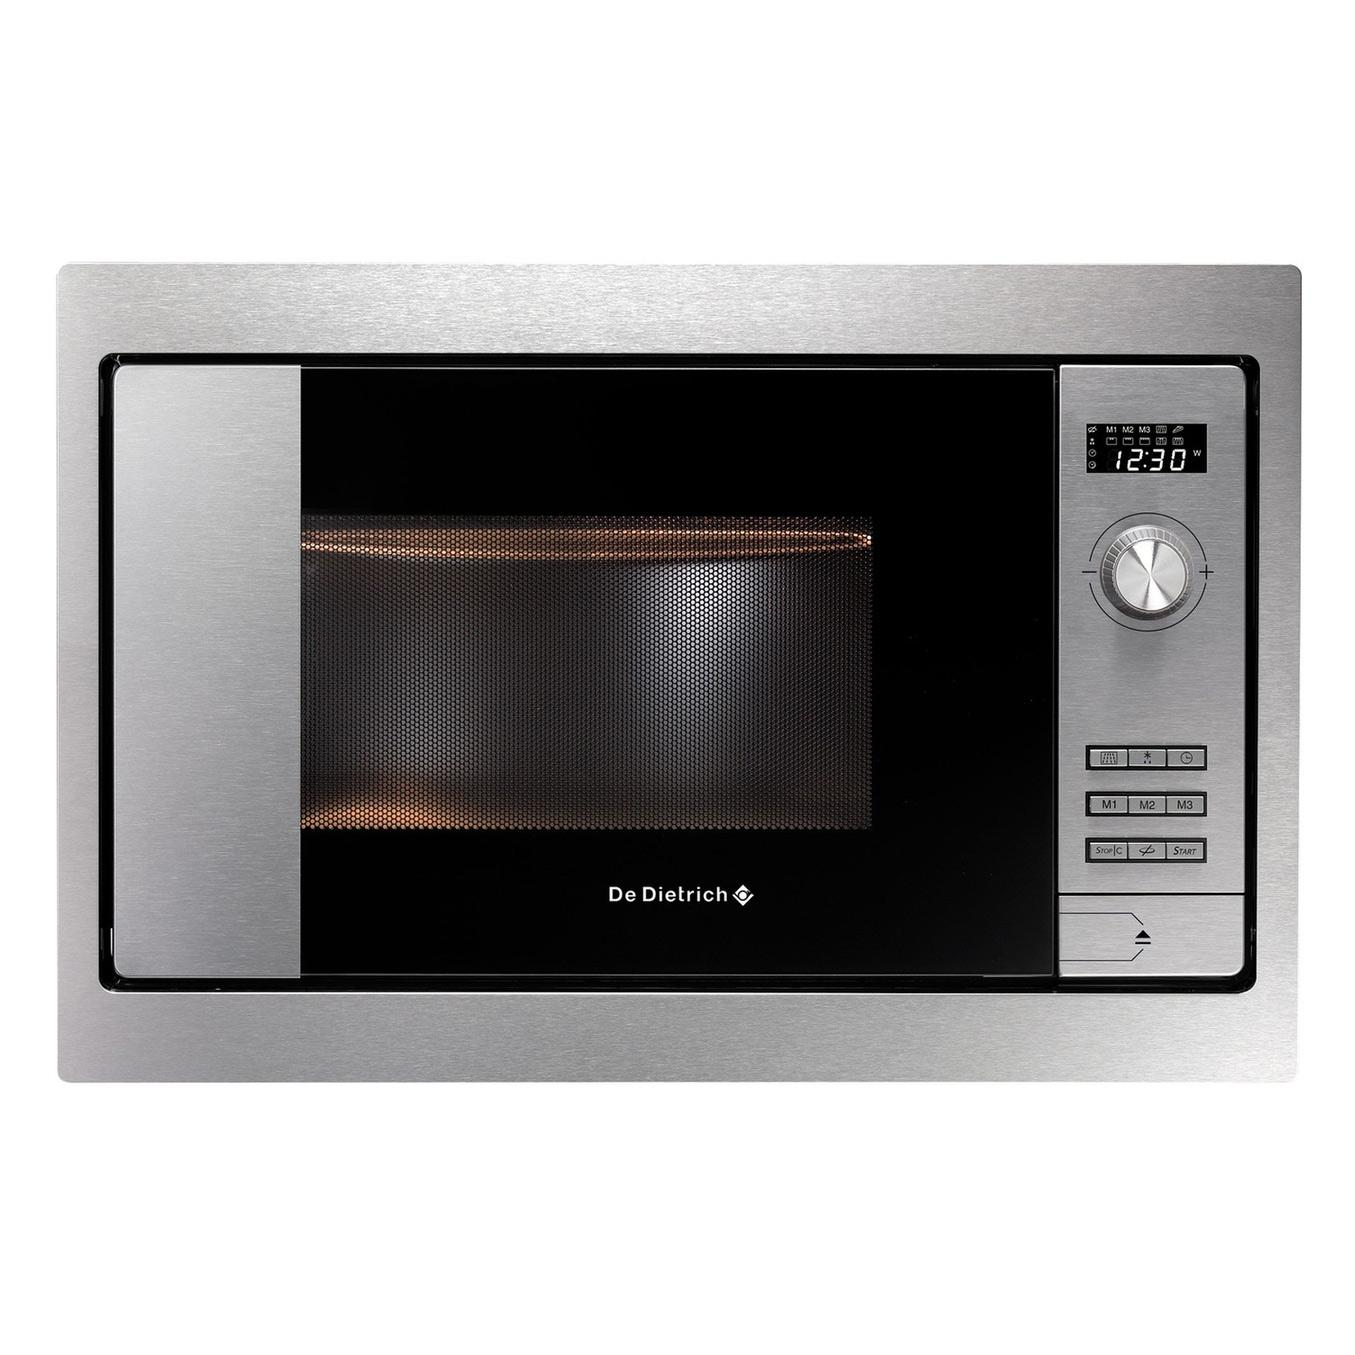 Four micro-ondes encastrable - 26L - 900W - DME1221X - Inox